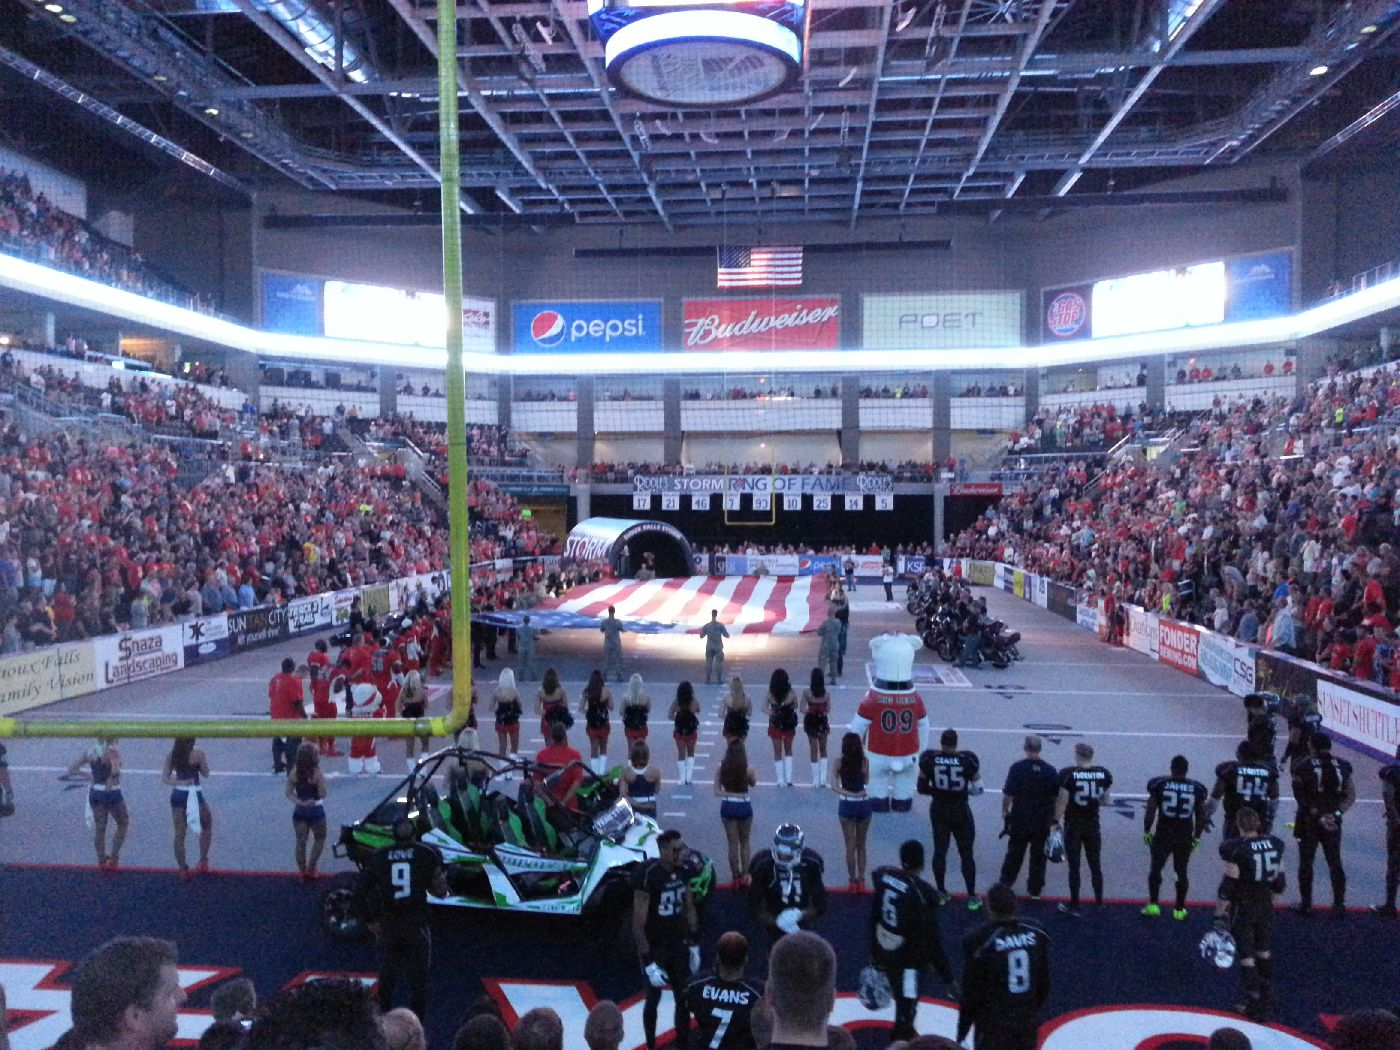 The Sioux Falls Storm hosts the 2015 United Bowl